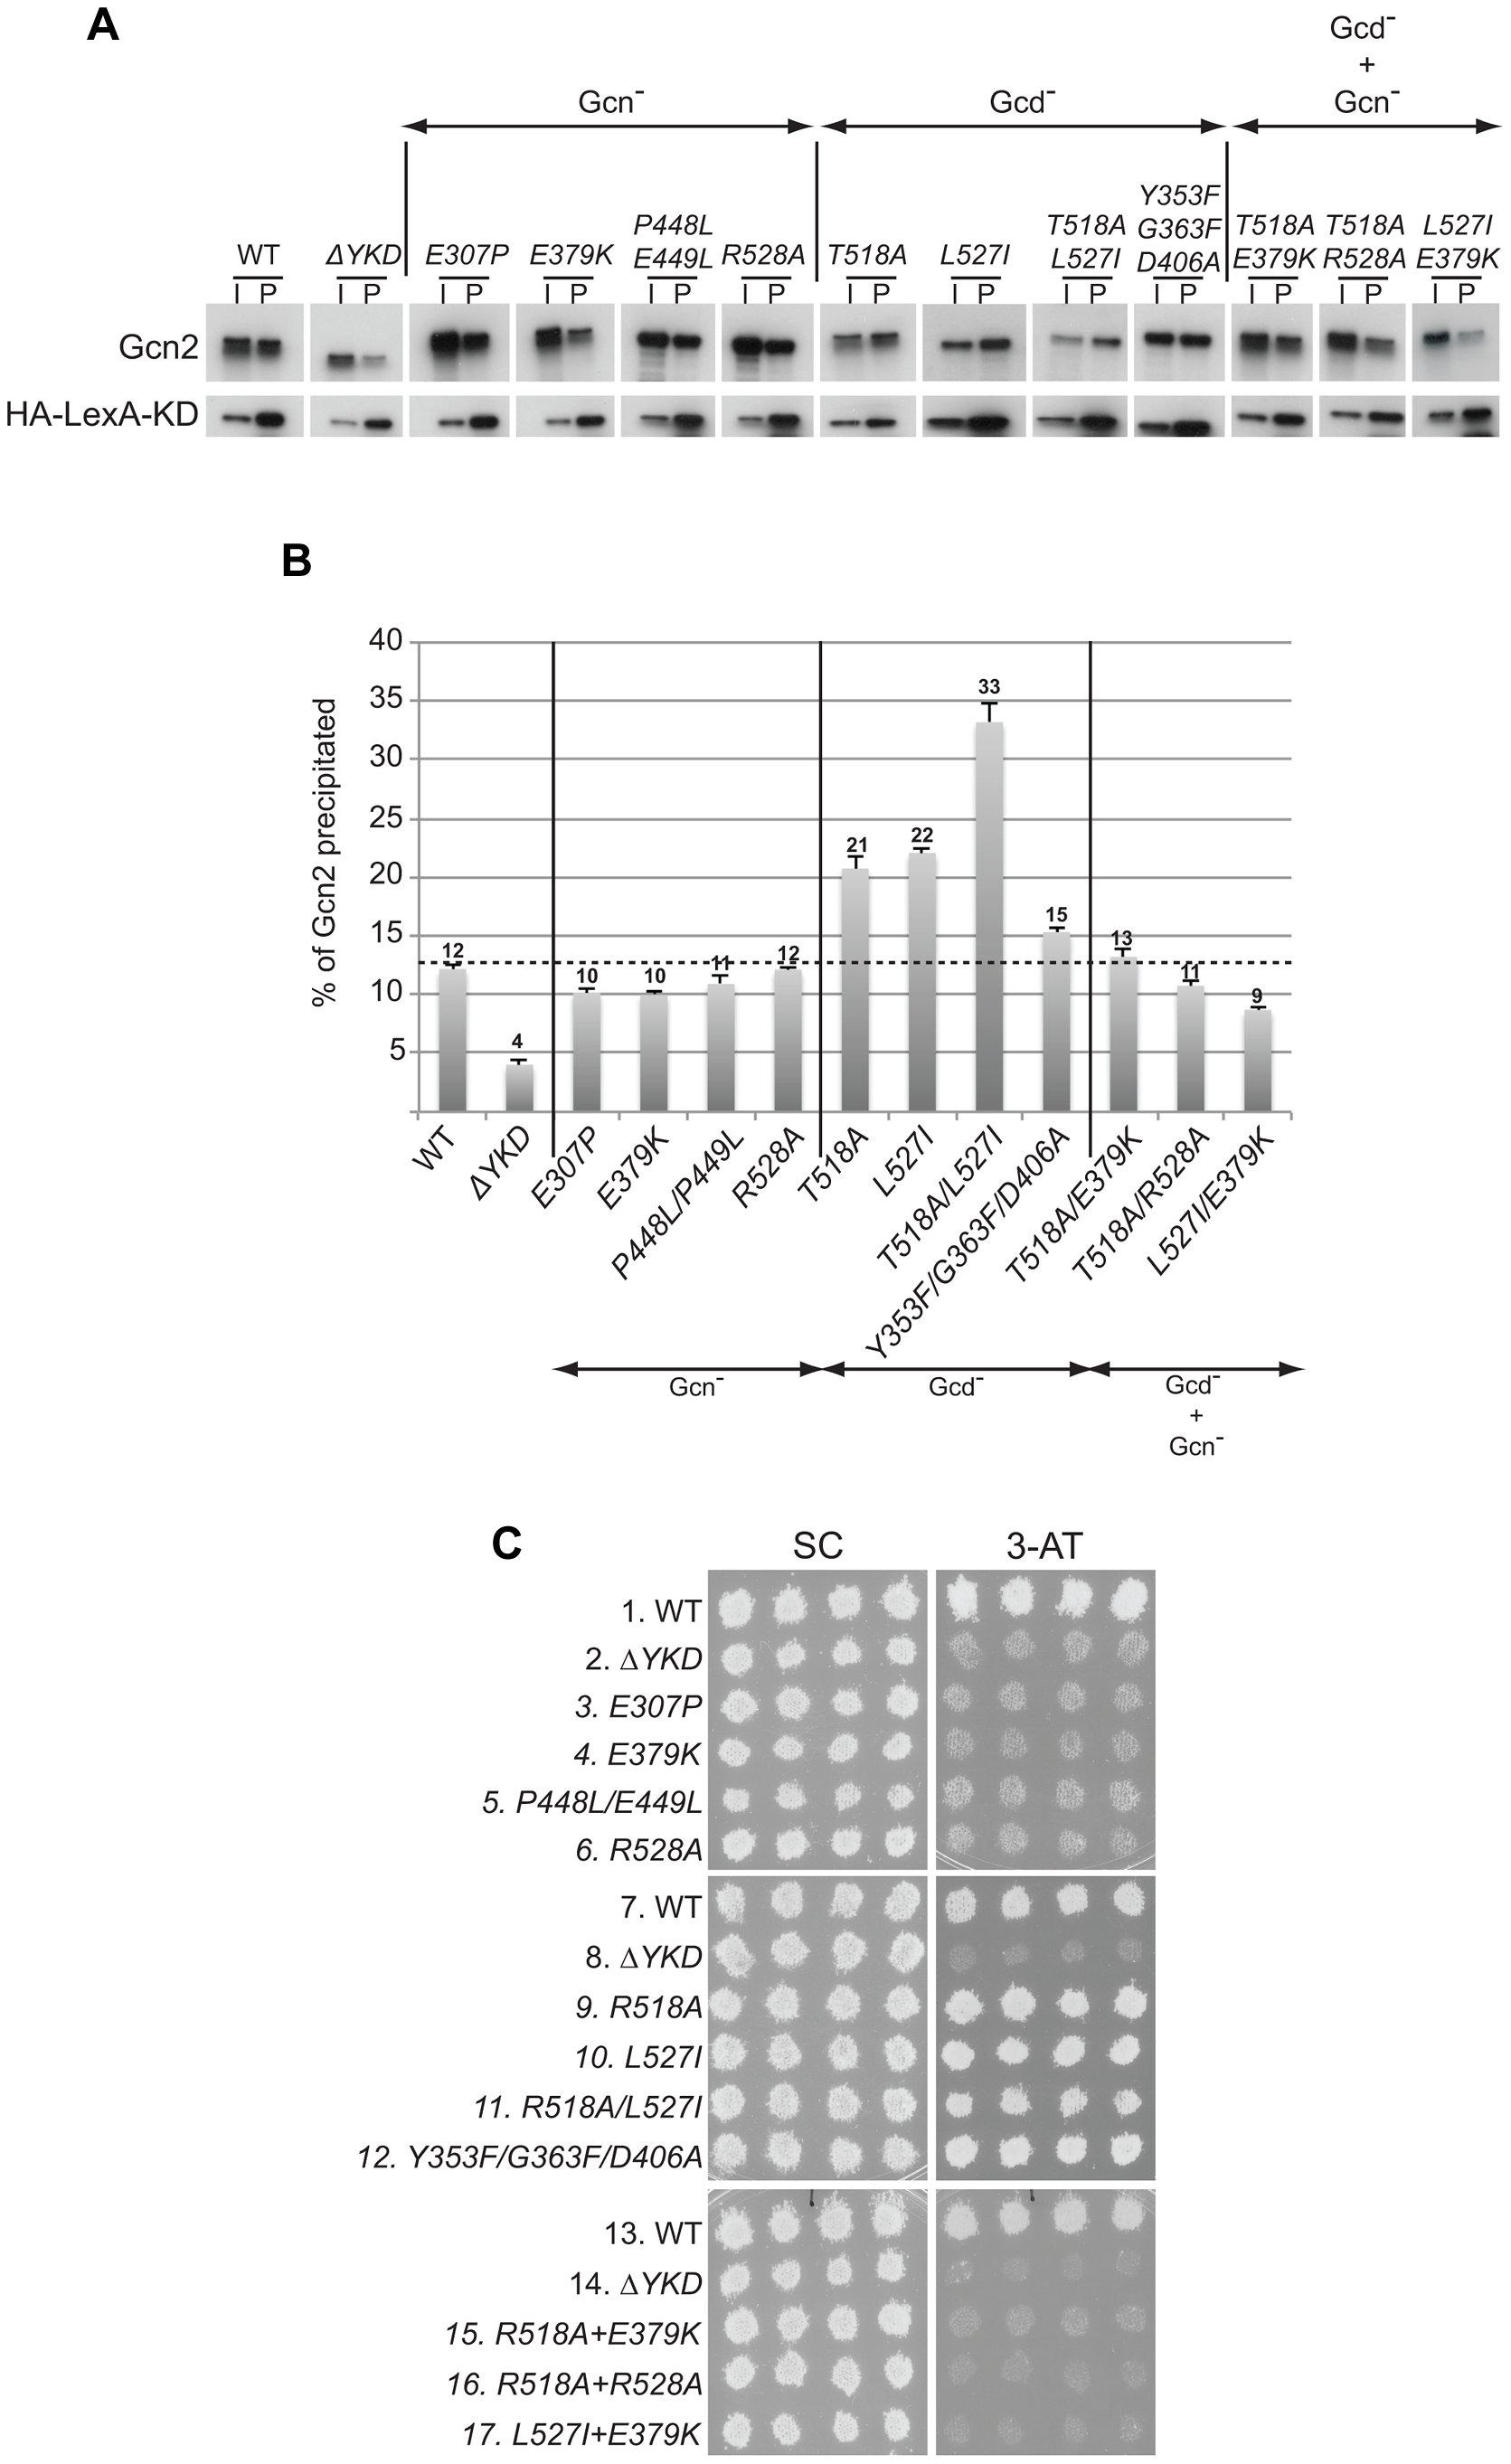 Certain Gcd<sup>−</sup> substitutions in the YKD enhance coimmunoprecipitation of Gcn2 with LexA-HA-KD from yeast extracts.